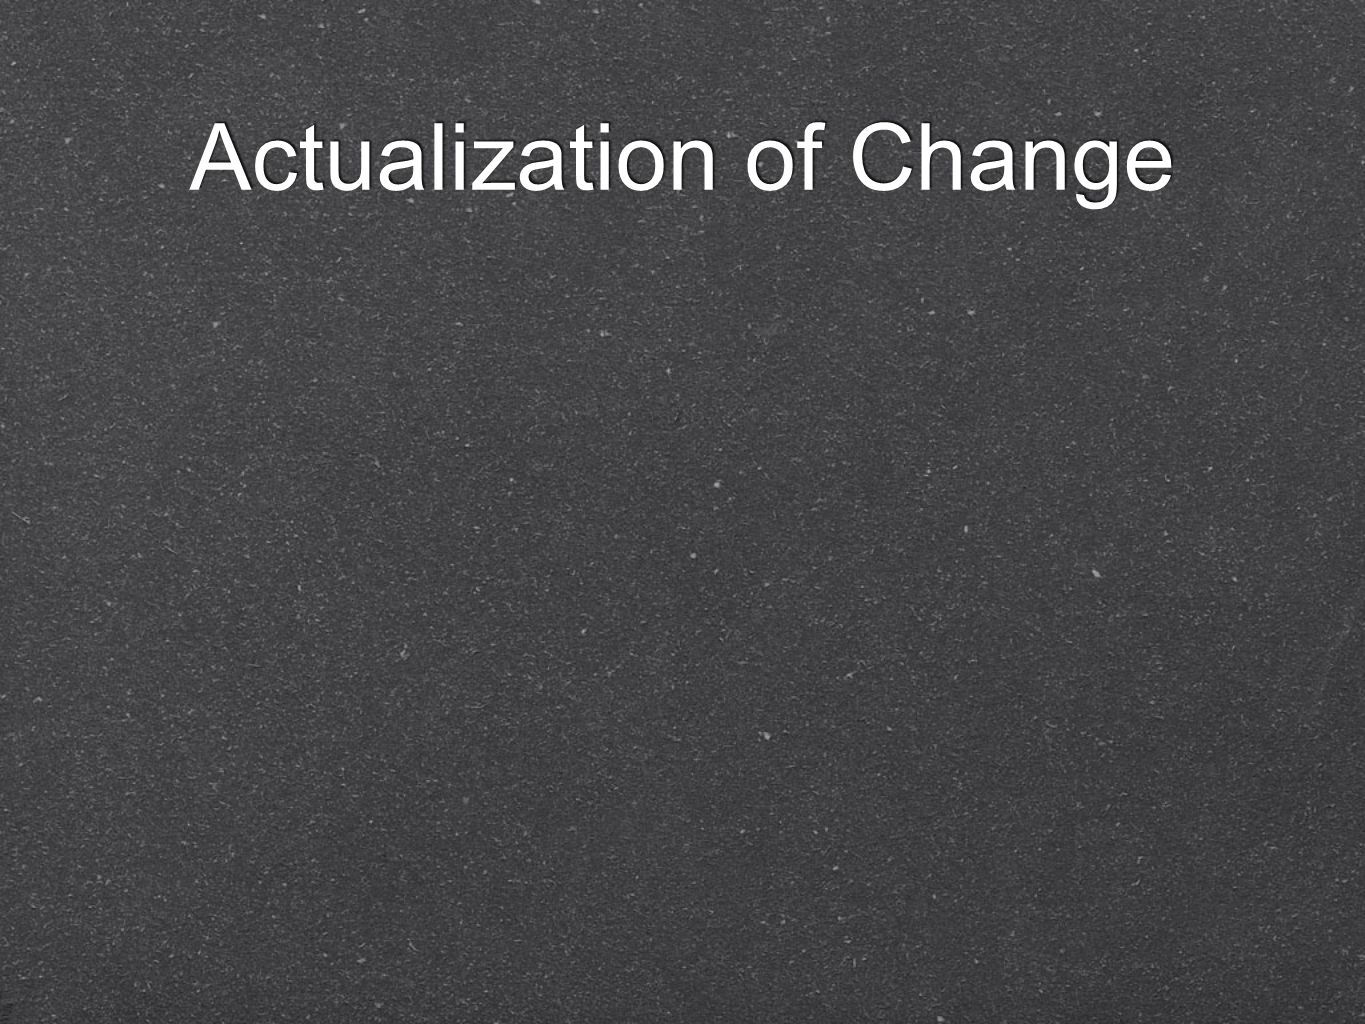 Actualization of Change